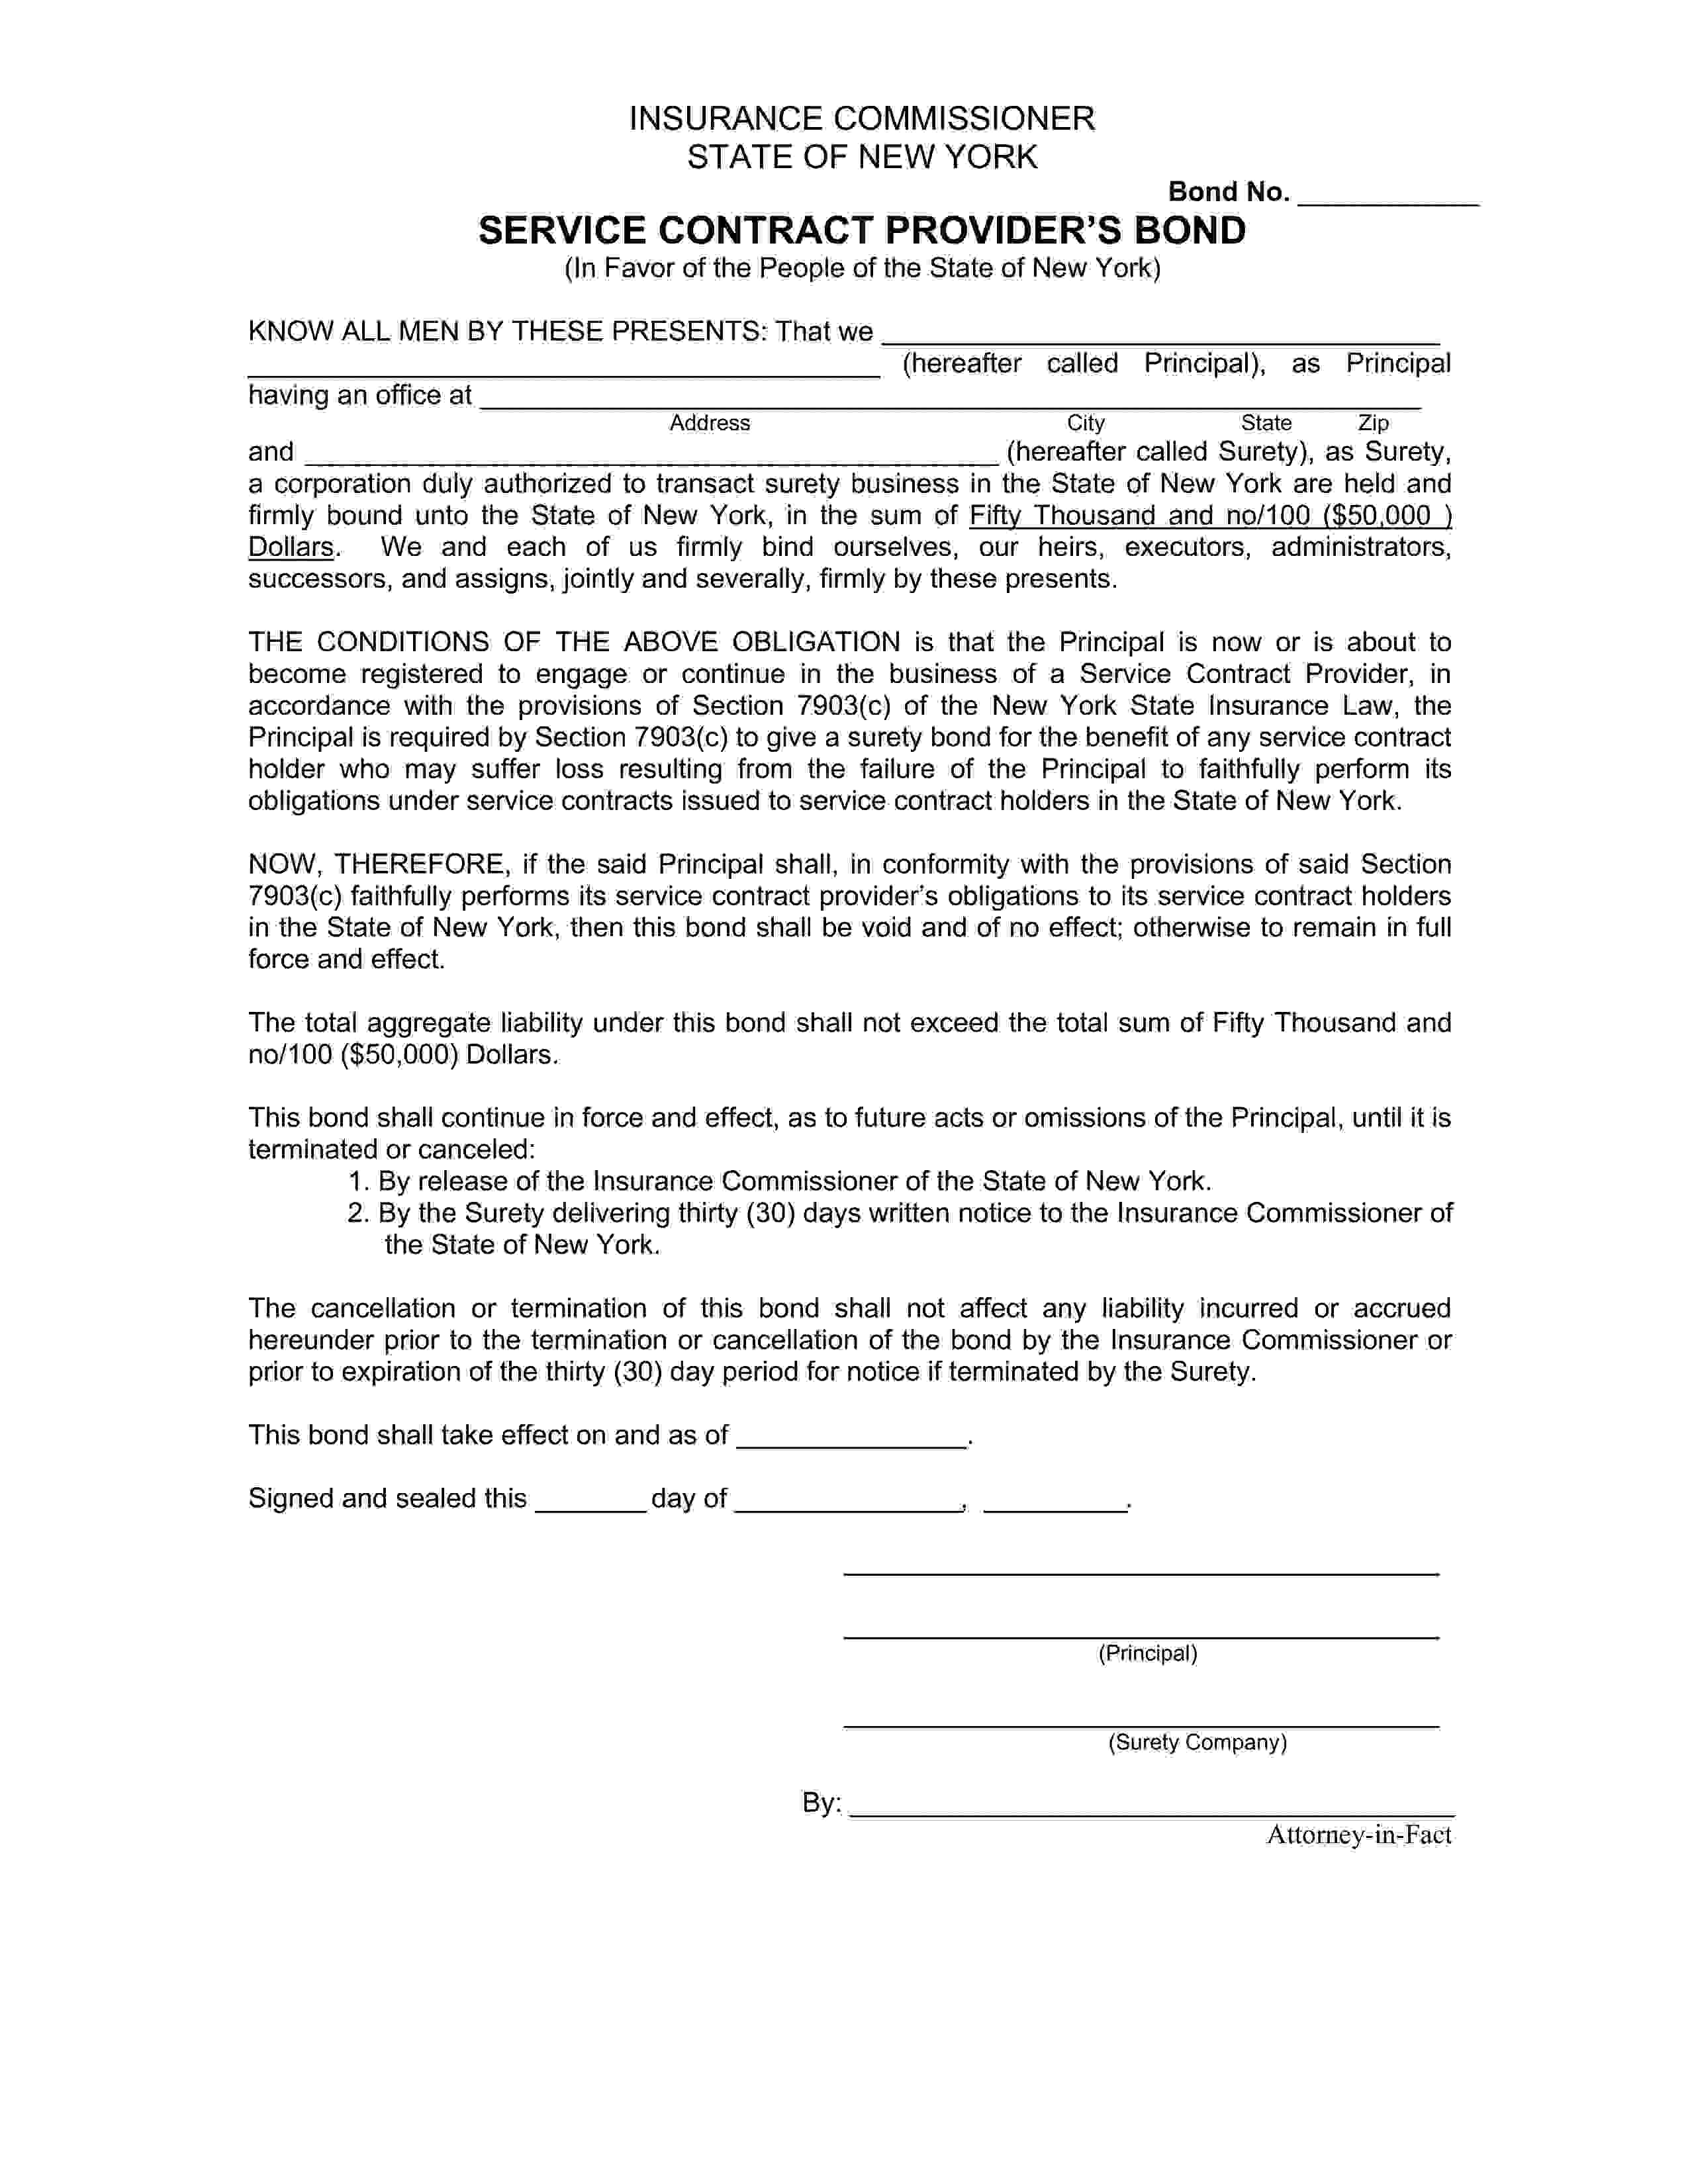 New York Department of Insurance Service Contract Provider sample image